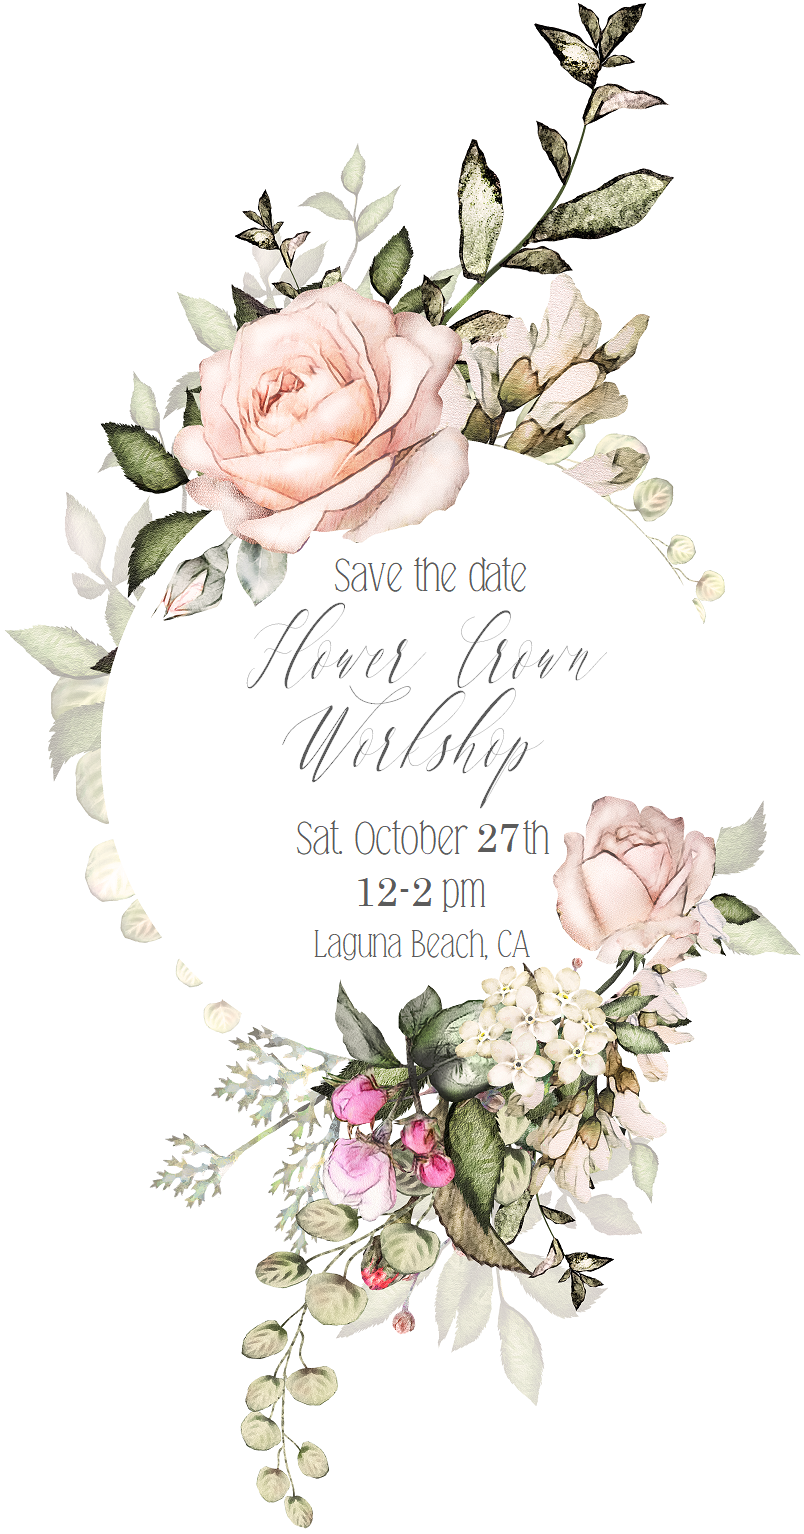 Save The Date For Our Laguna Beach Flower Crown Workshop Love